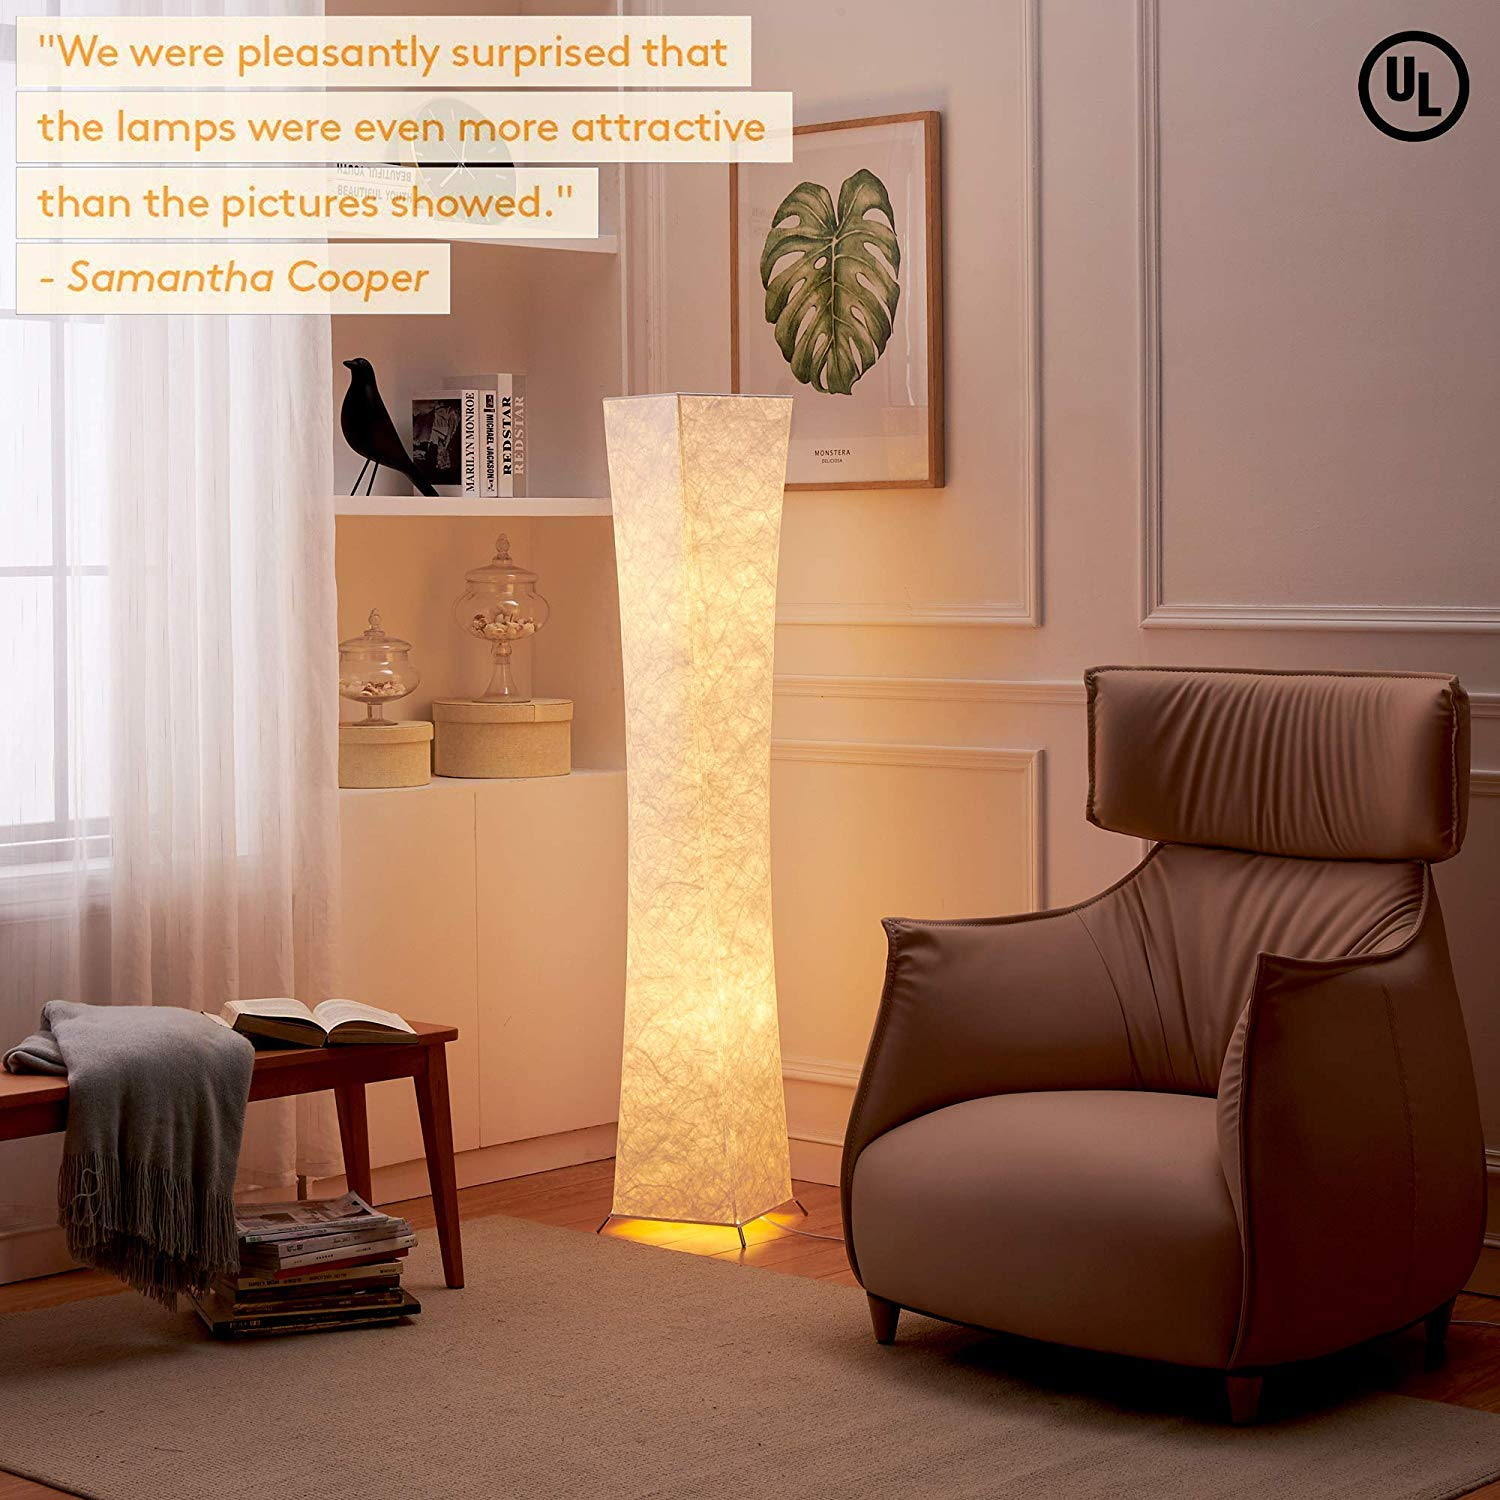 LEONC Design 61'' Creative LED Floor Lamp, Softlighting Minimalist Modern Contemporary with Fabric Shade & 2 Bulbs Floor Lamps for Living Room Bedroom Warm Atmosphere(Tyvek Dupont 10 x 10 x 61 inch) by LEONC Design (Image #2)